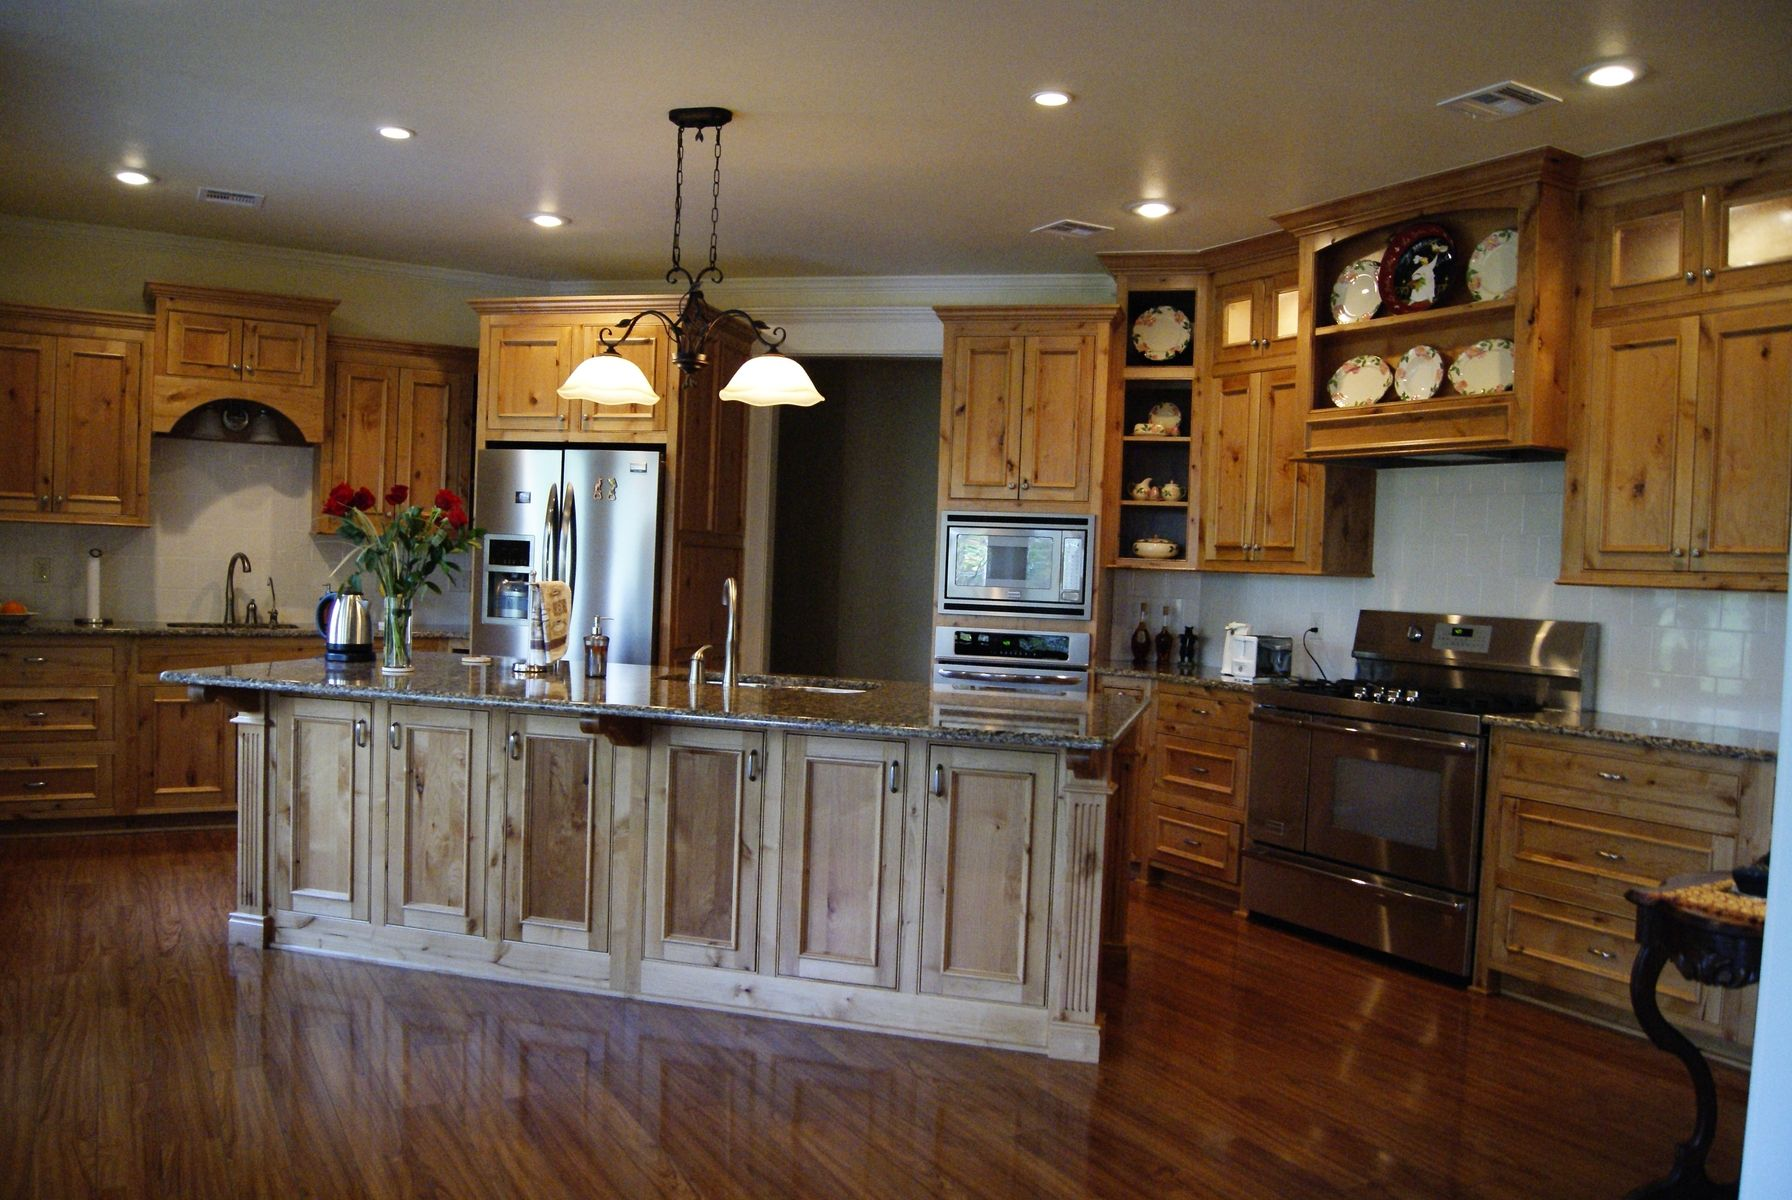 Hand made classic country kitchen by grayson artistry in for Country kitchen cabinets